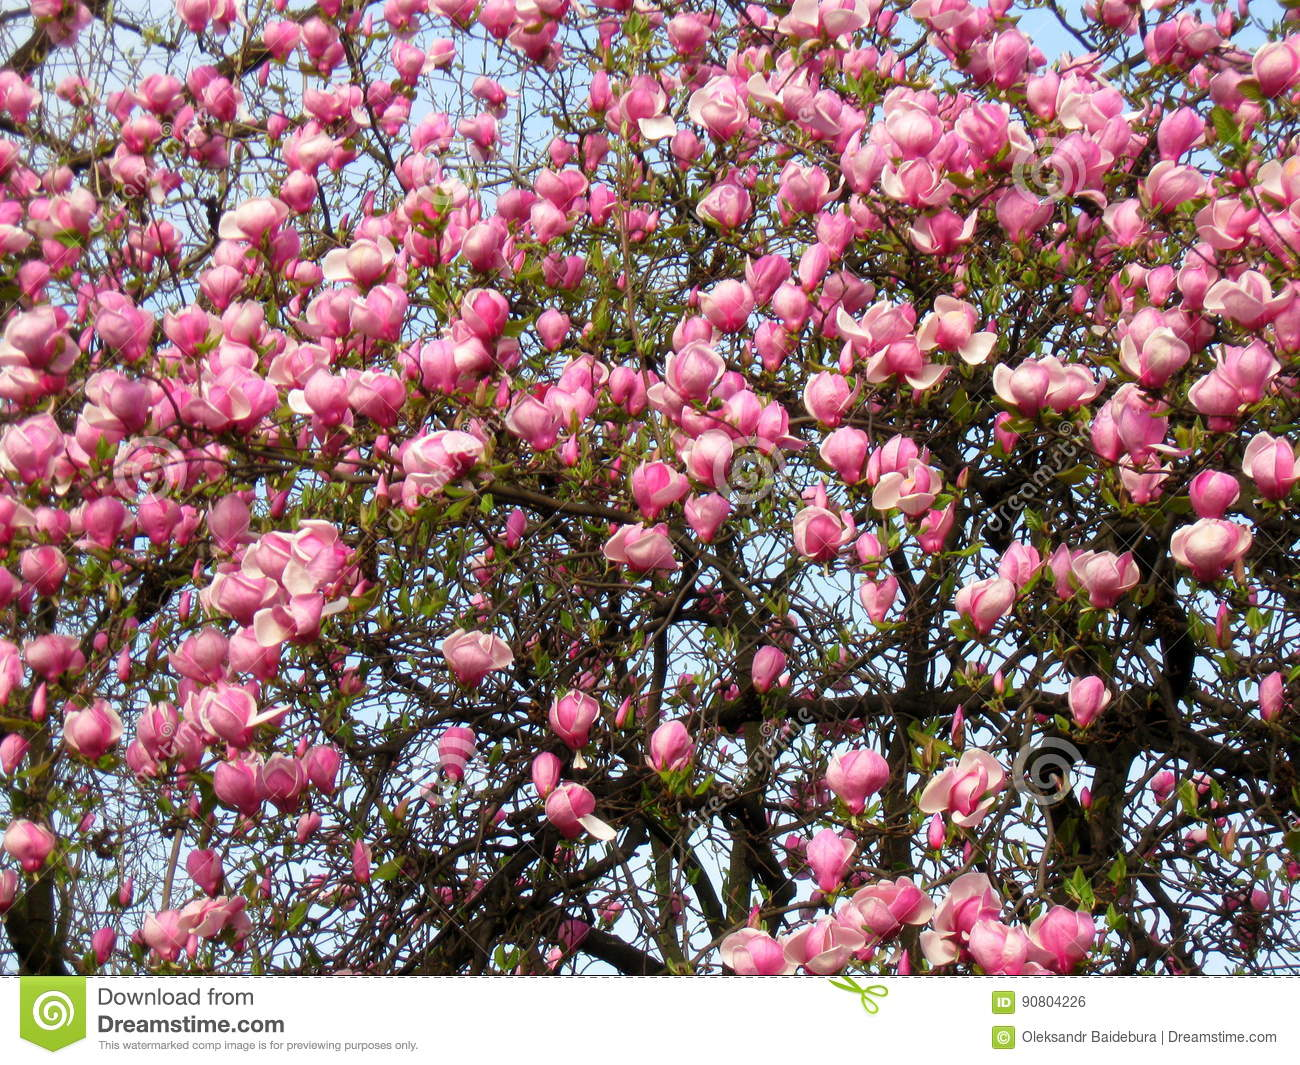 Bloomy magnolia tree with big pink flowers stock photo image of download bloomy magnolia tree with big pink flowers stock photo image of fragrance floral mightylinksfo